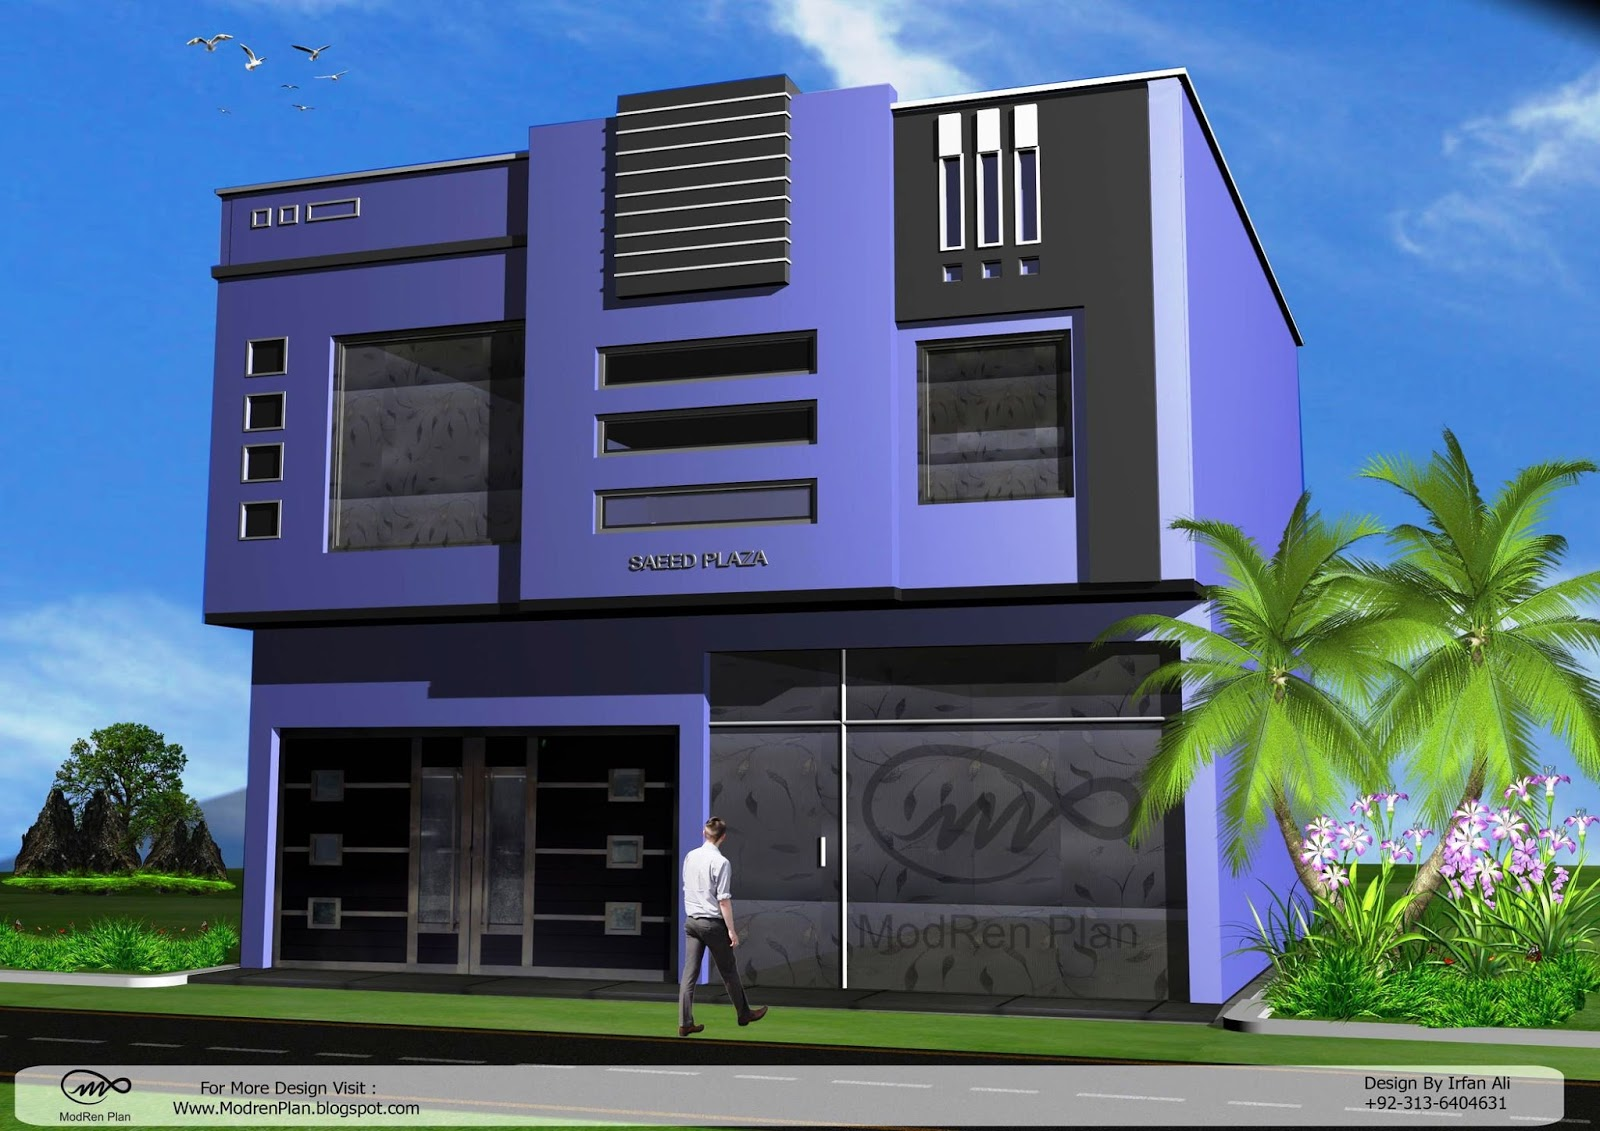 Front Elevation Of Modern Buildings : Modern commercial building designs and plaza front elevation